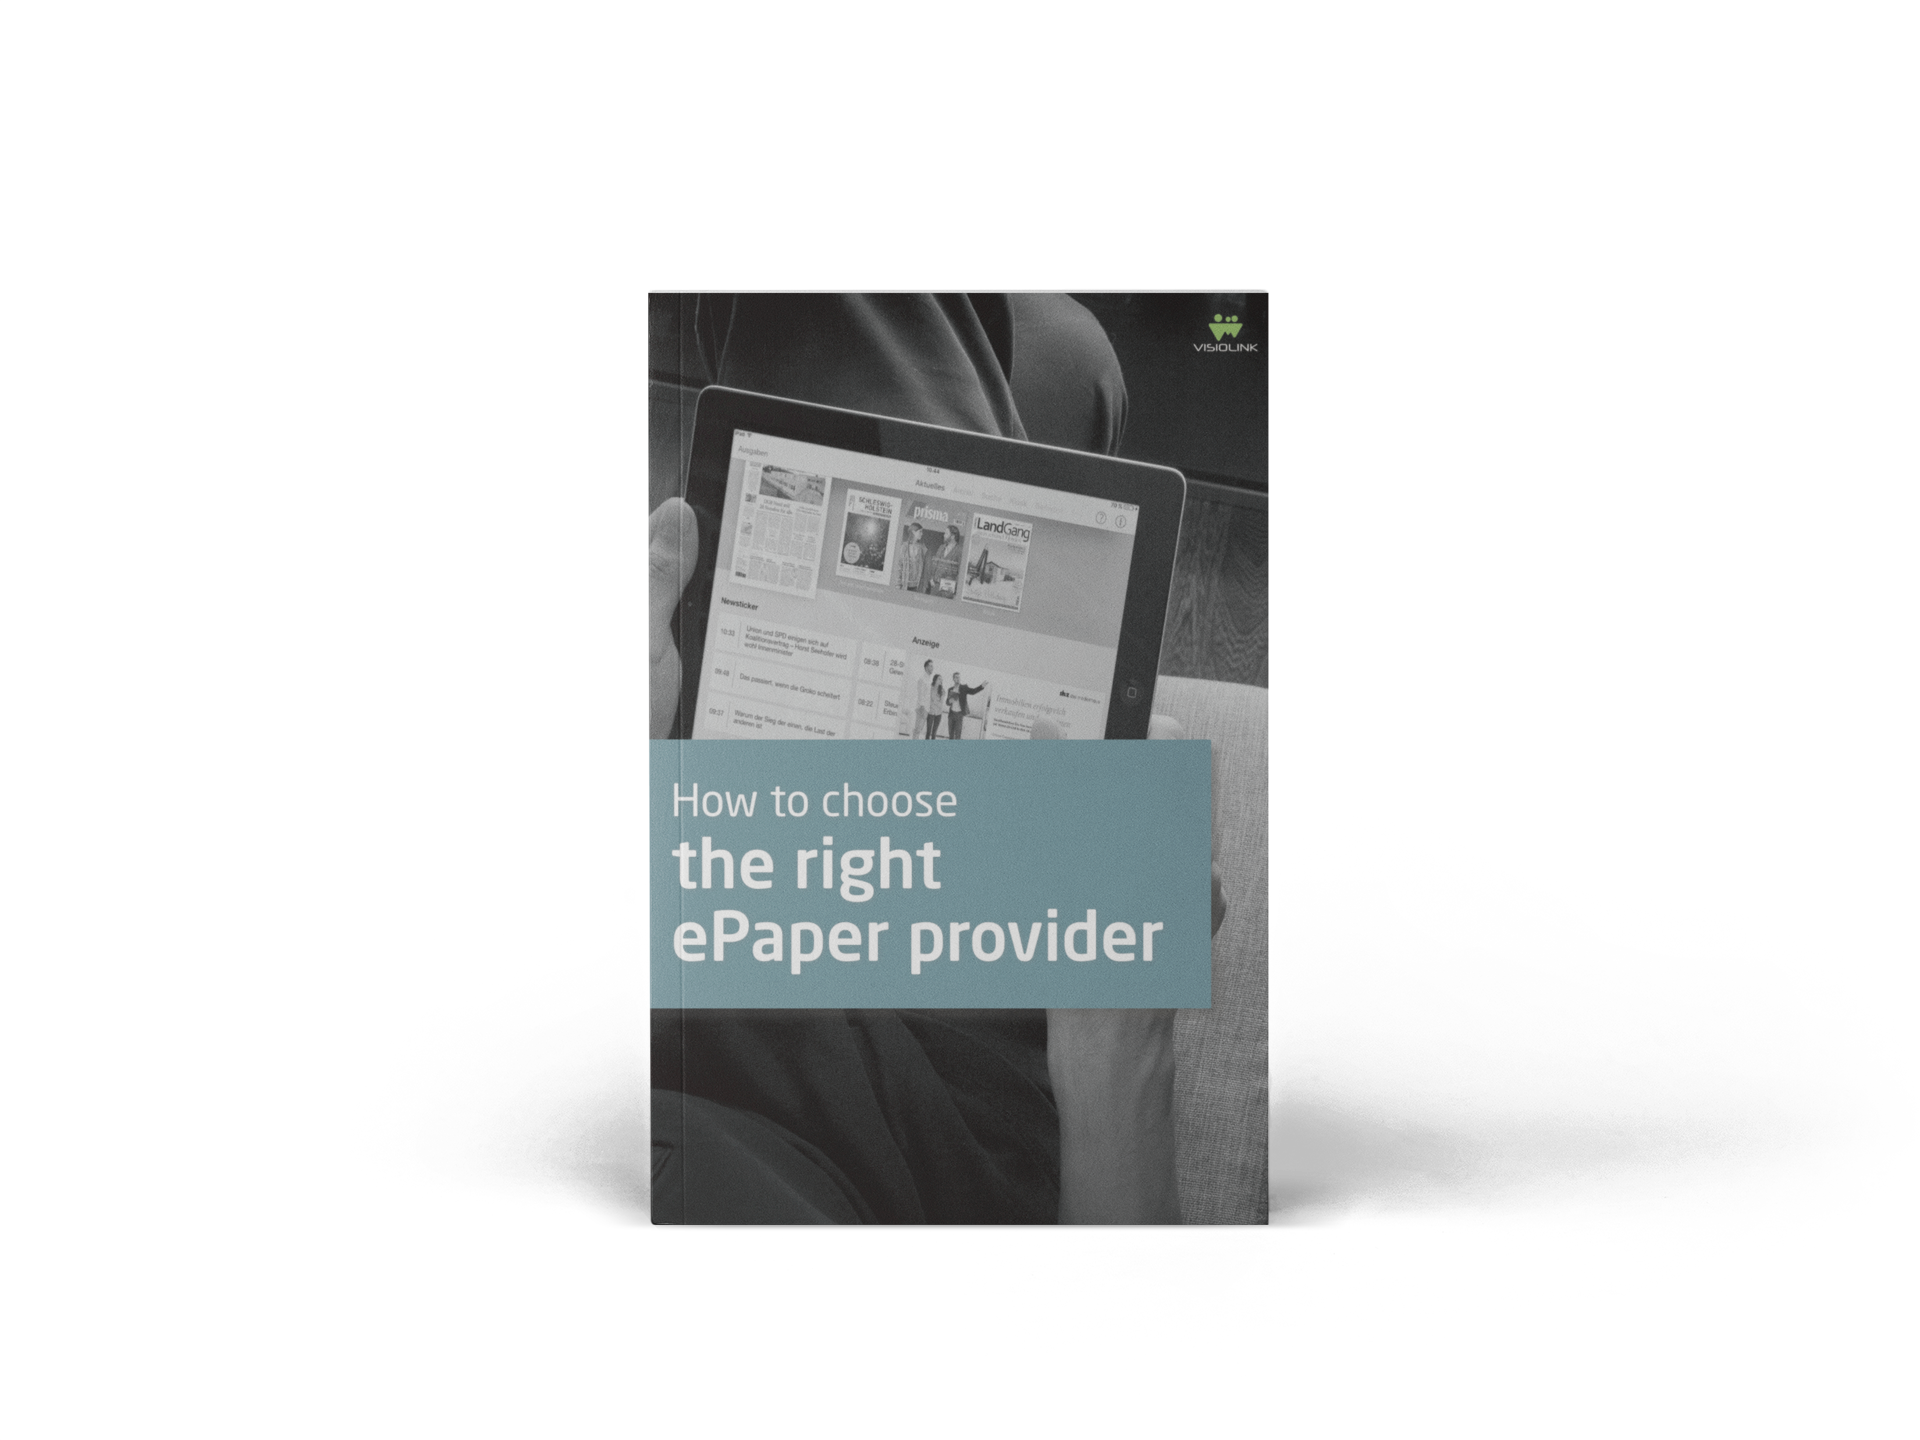 How to download choose the right ePaper provider download